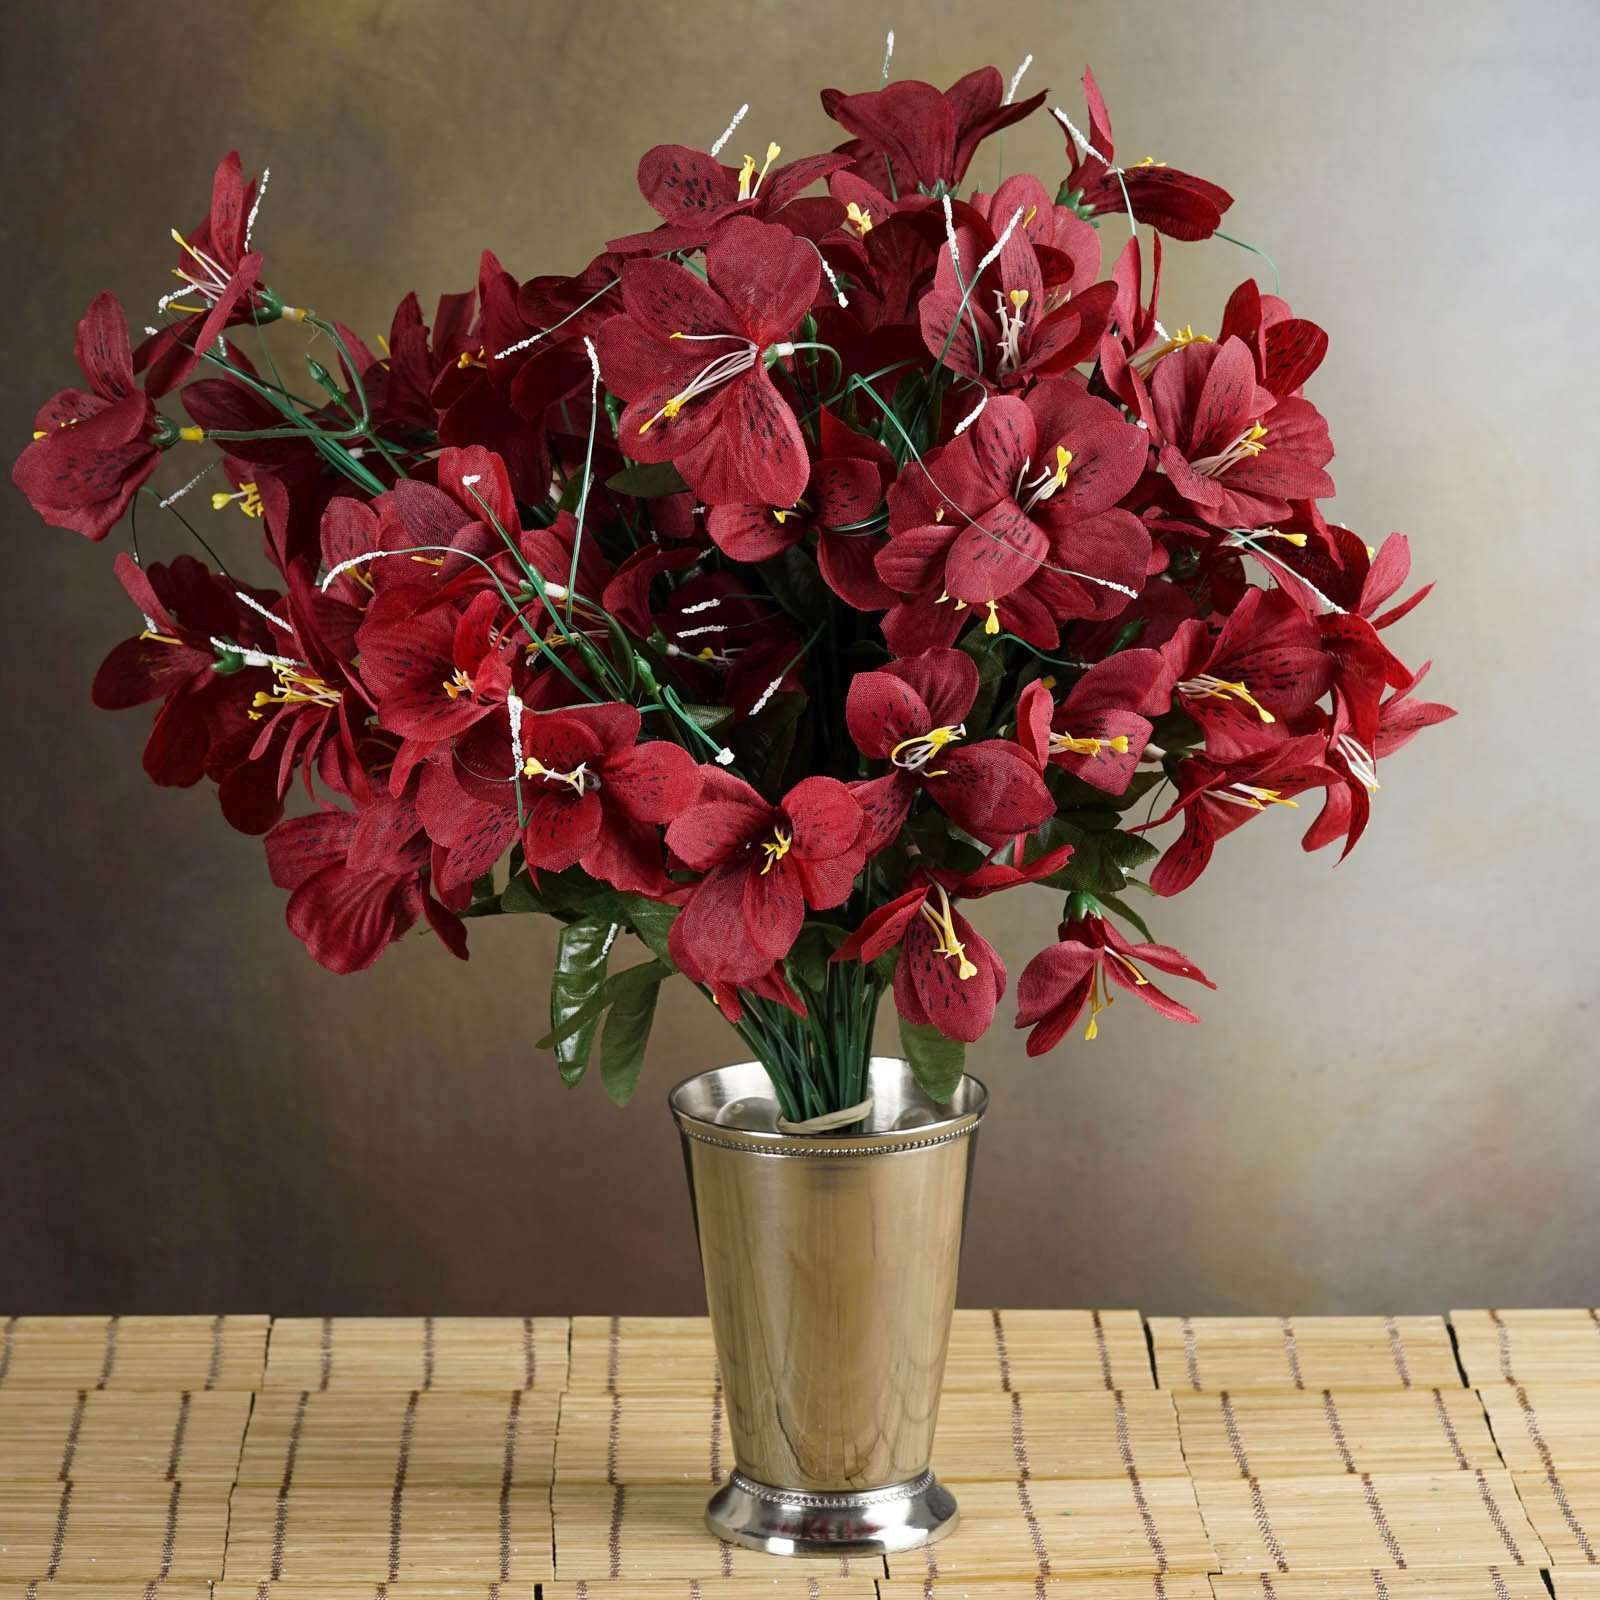 6 Bush 144 Pcs Burgundy Amaryllis Artificial Silk Flowers Wedding